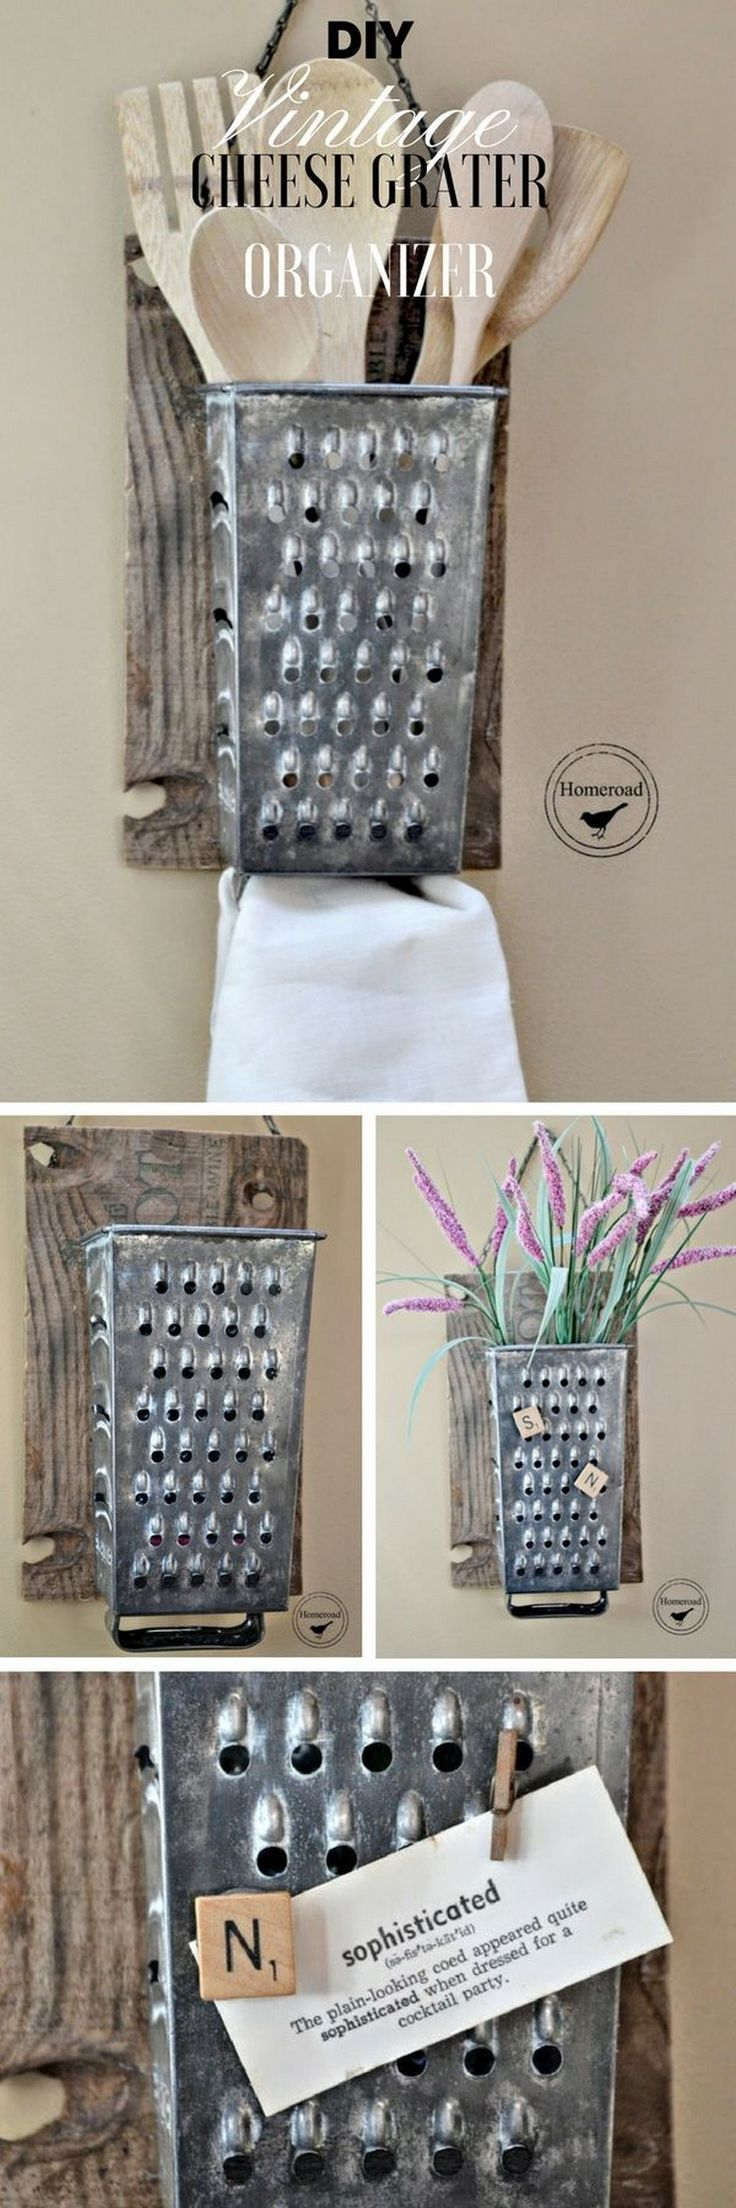 Best 25 rustic home decorating ideas on pinterest dog decorations rustic industrial decor Home decor hacks pinterest